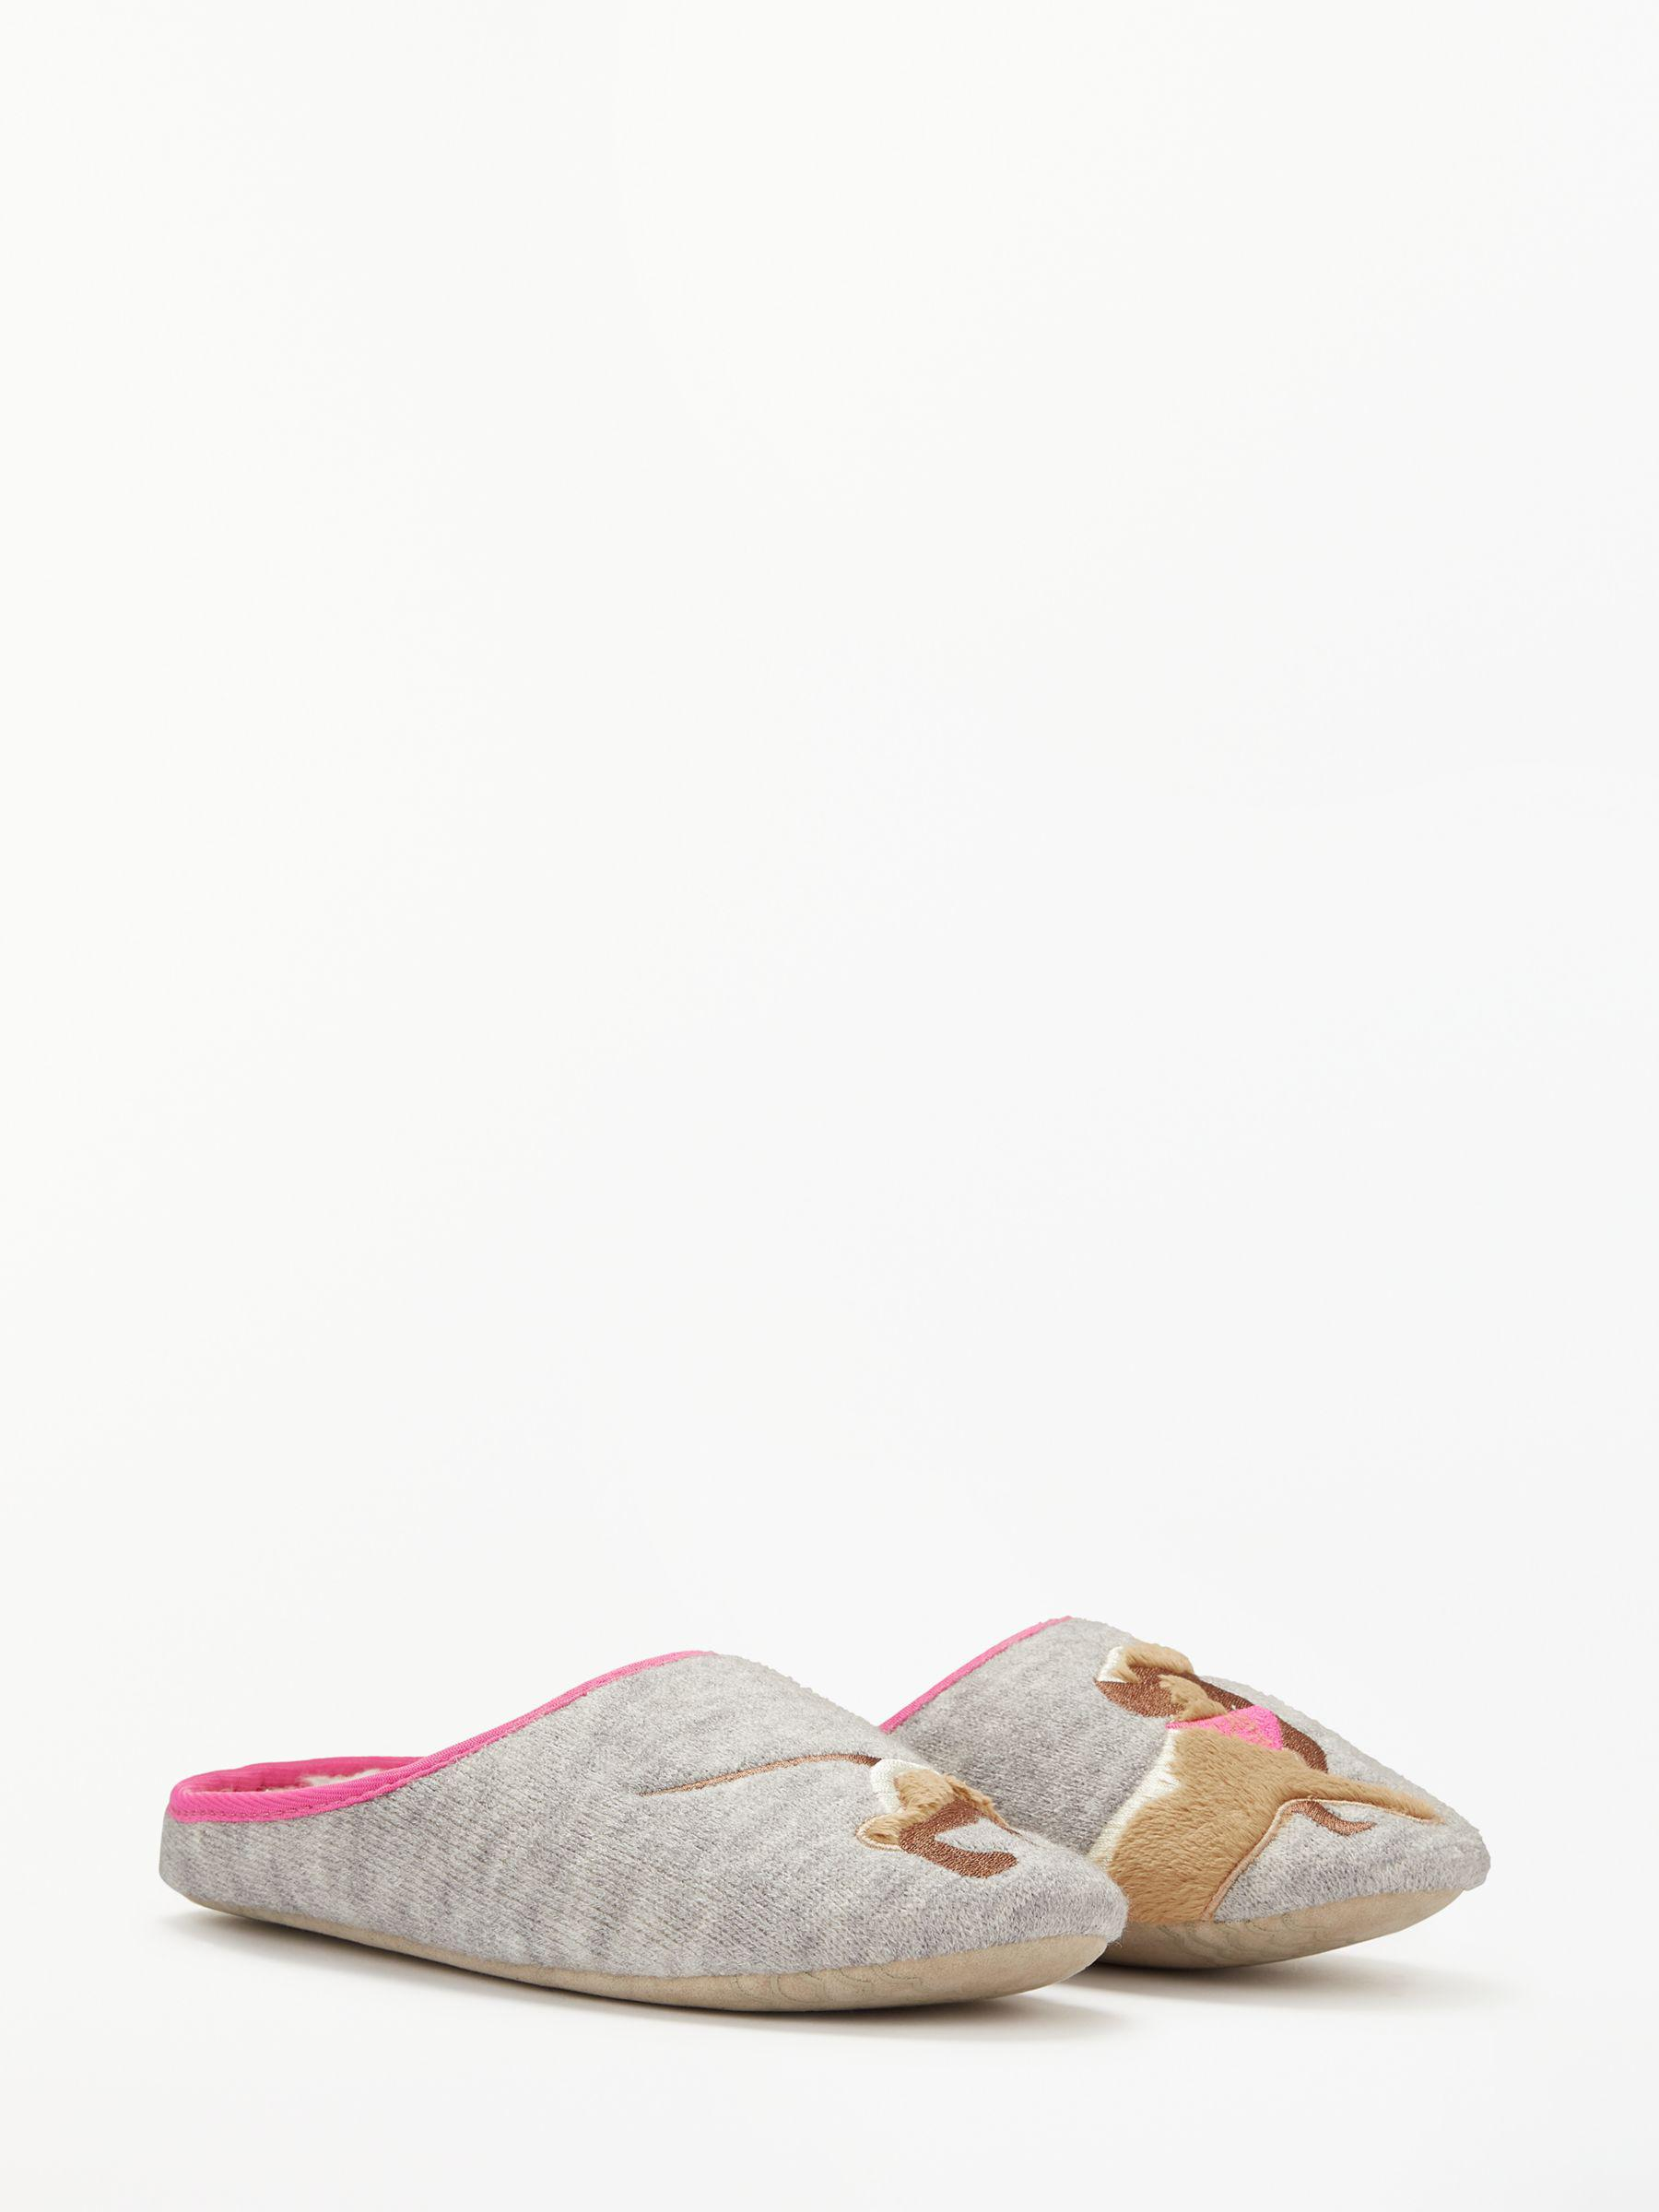 babada1a82d John Lewis Sausage Dog Knit Mule Slippers in Gray - Lyst